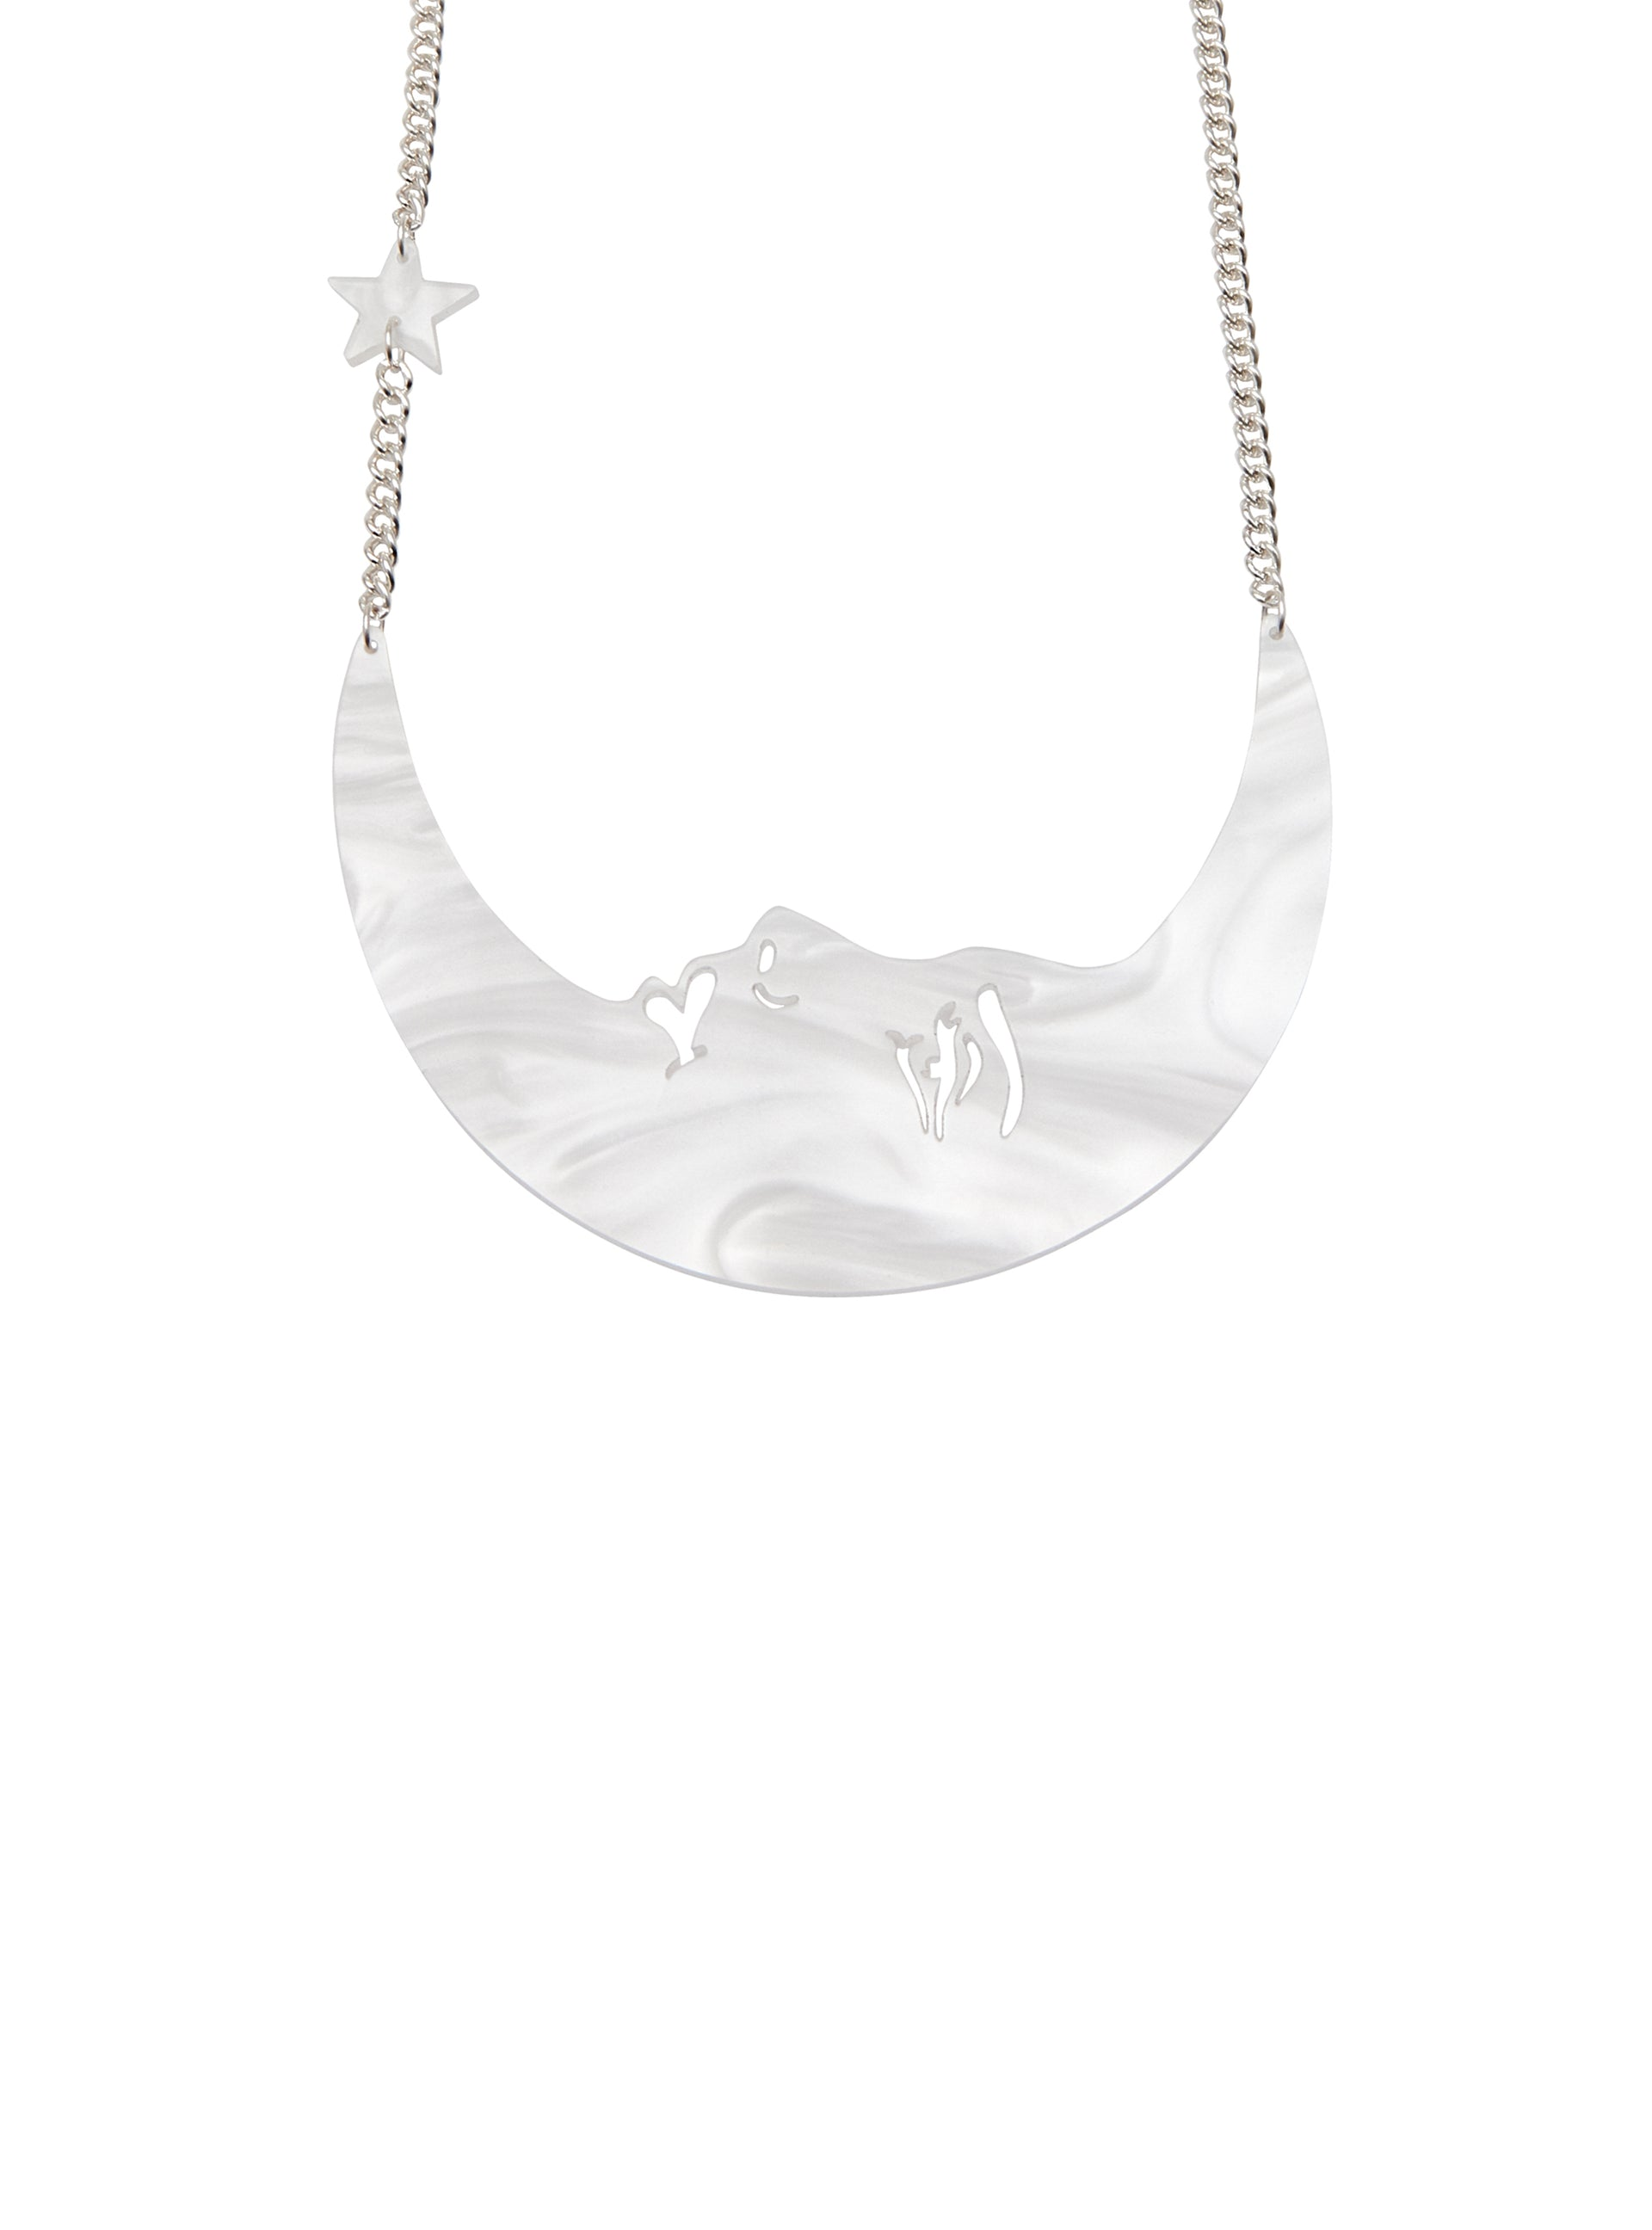 La Luna Moon Necklace - Pearl